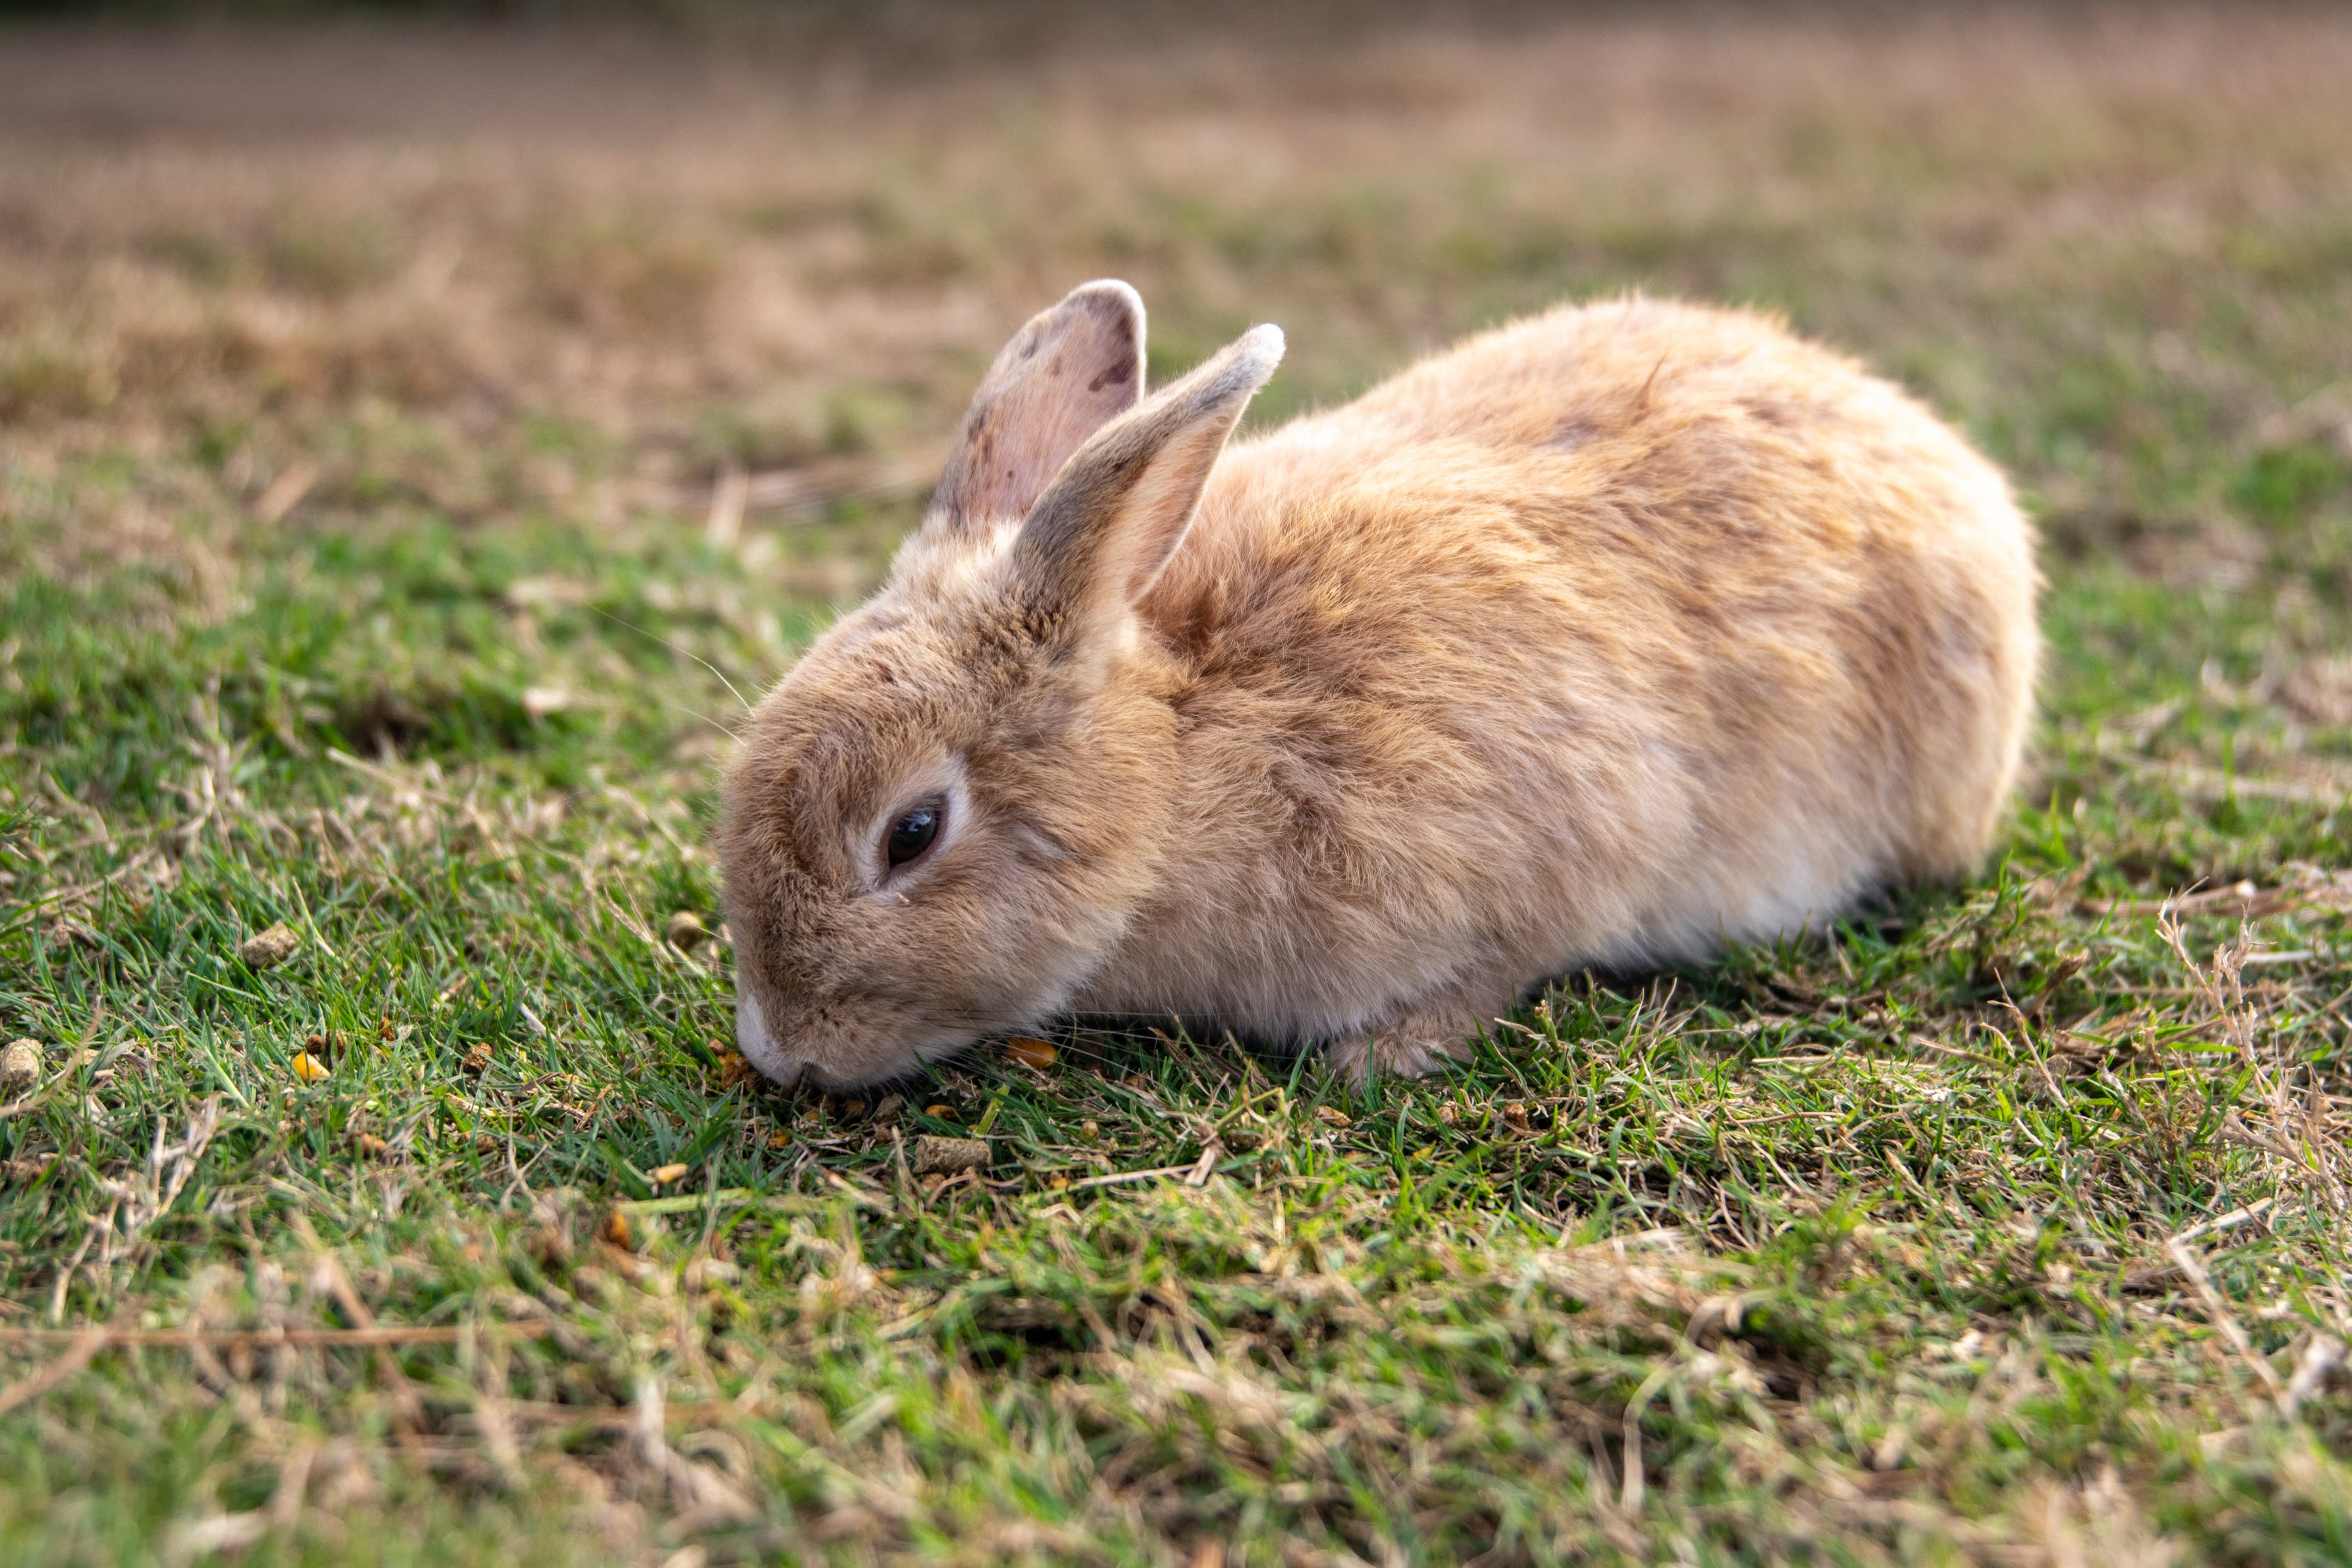 Bunny Photo by Magda Ehlers from Pexels